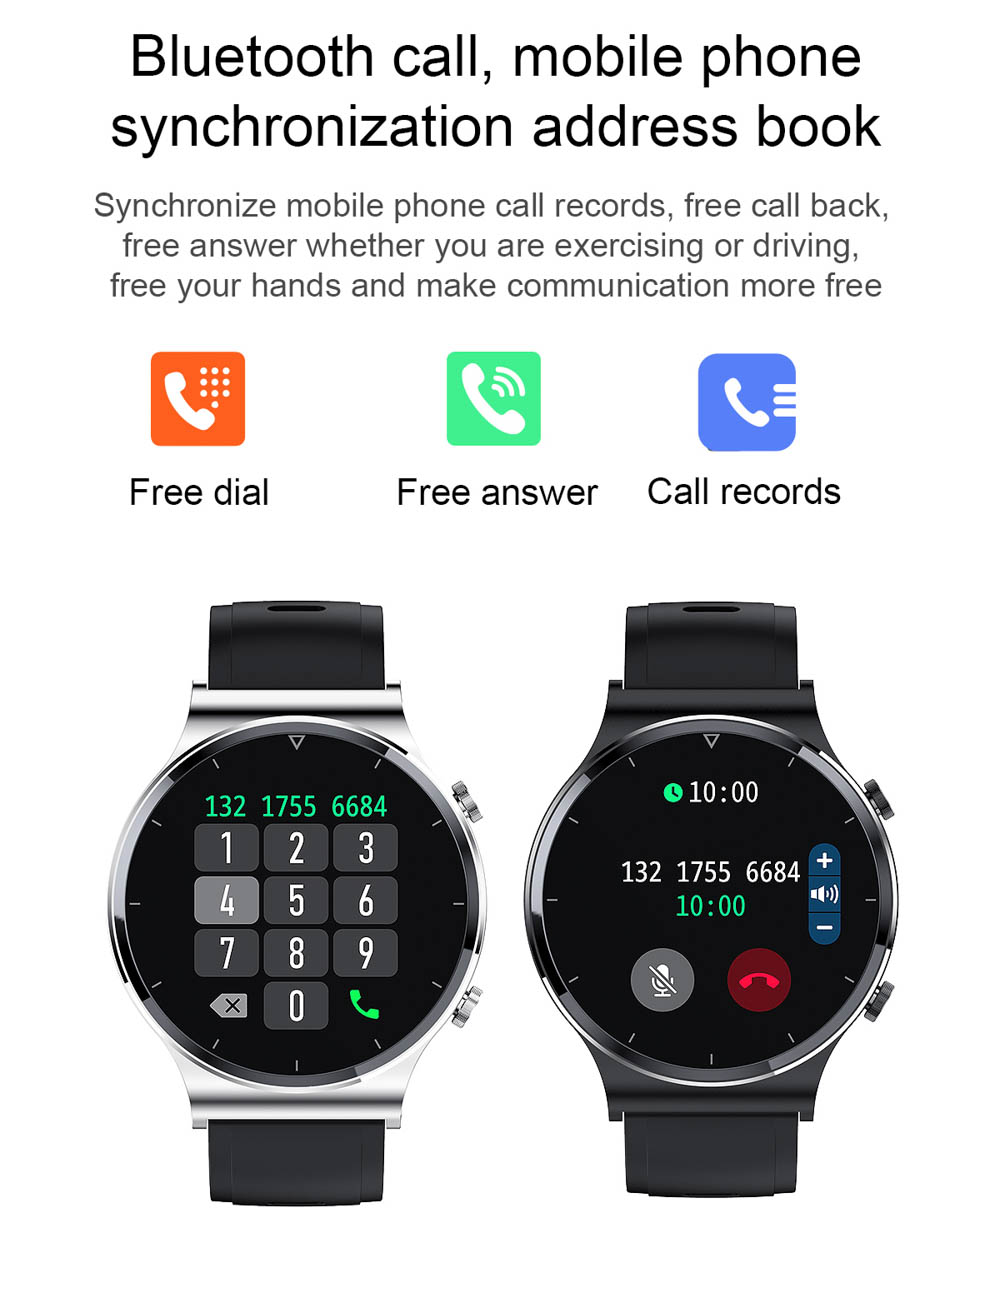 Hb3f9d8da5e1e4c83a705a0cc7ff68863O NUOBO 2021 New Smart Watch Men Bluetooth Call Heart Rate Blood Pressure Sports IP68 Waterproof Smartwatch for Android IOS Phone